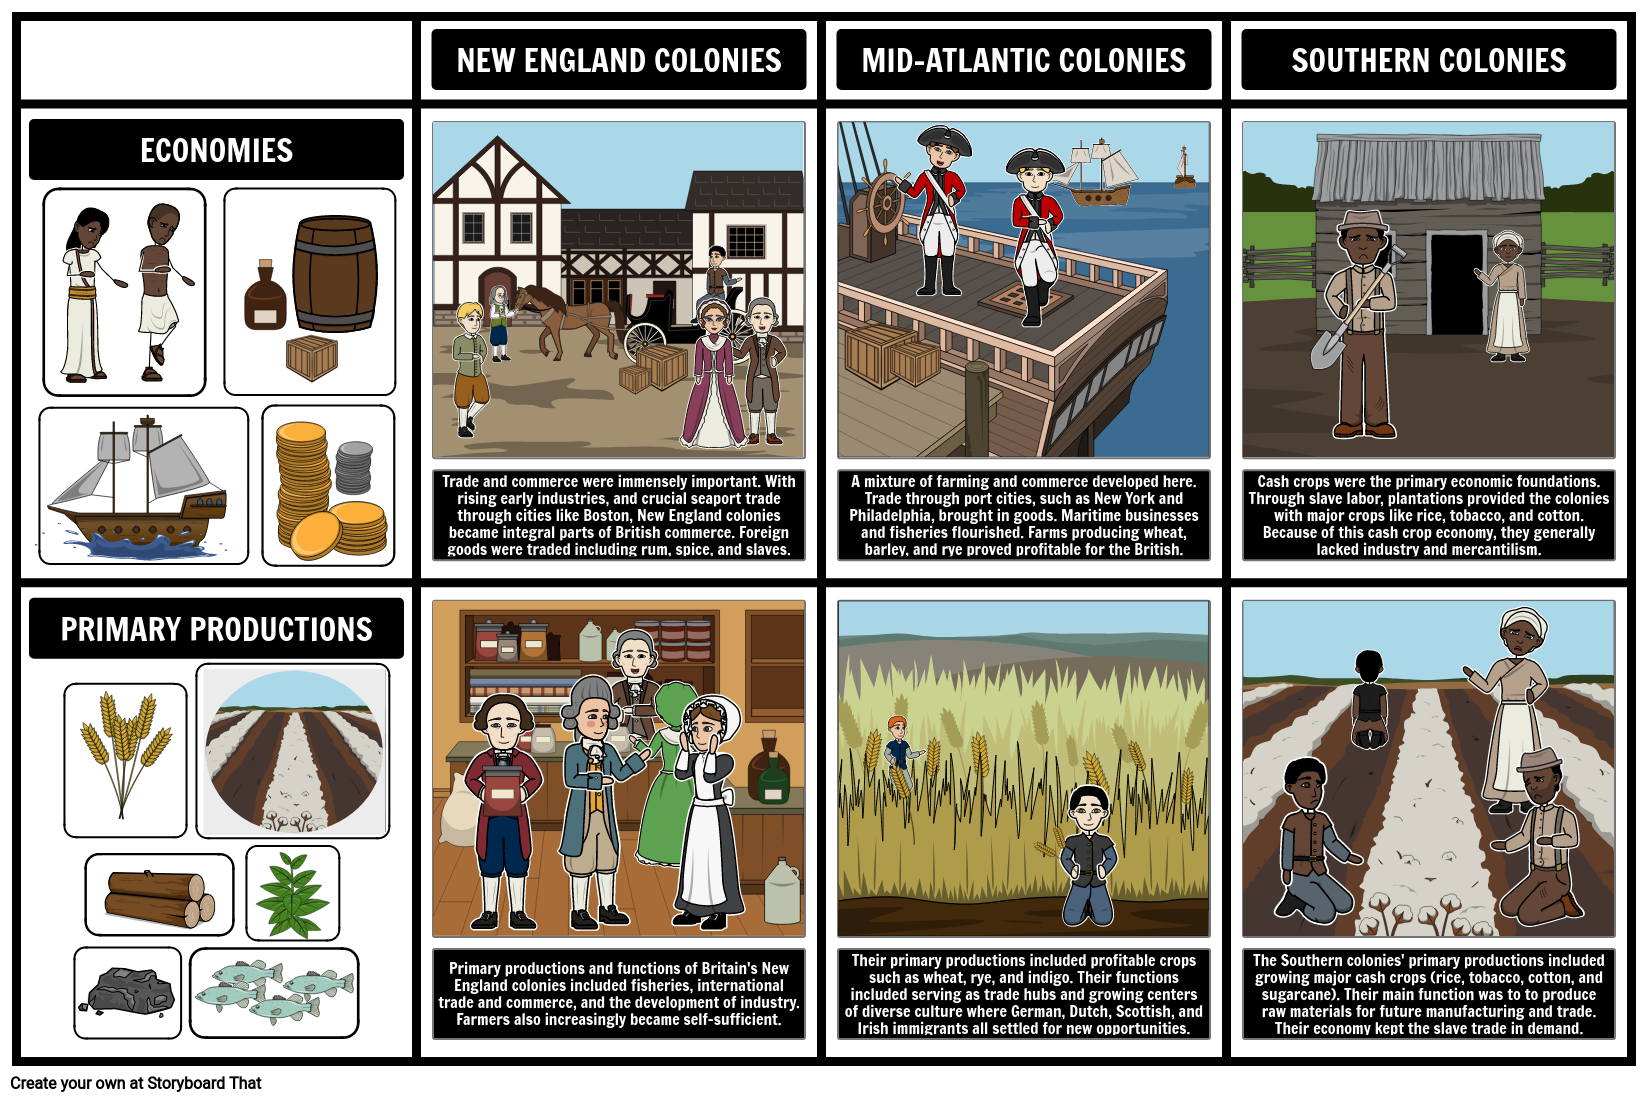 Causes of the american revolution timeline activities development of the american 13 colonies publicscrutiny Images